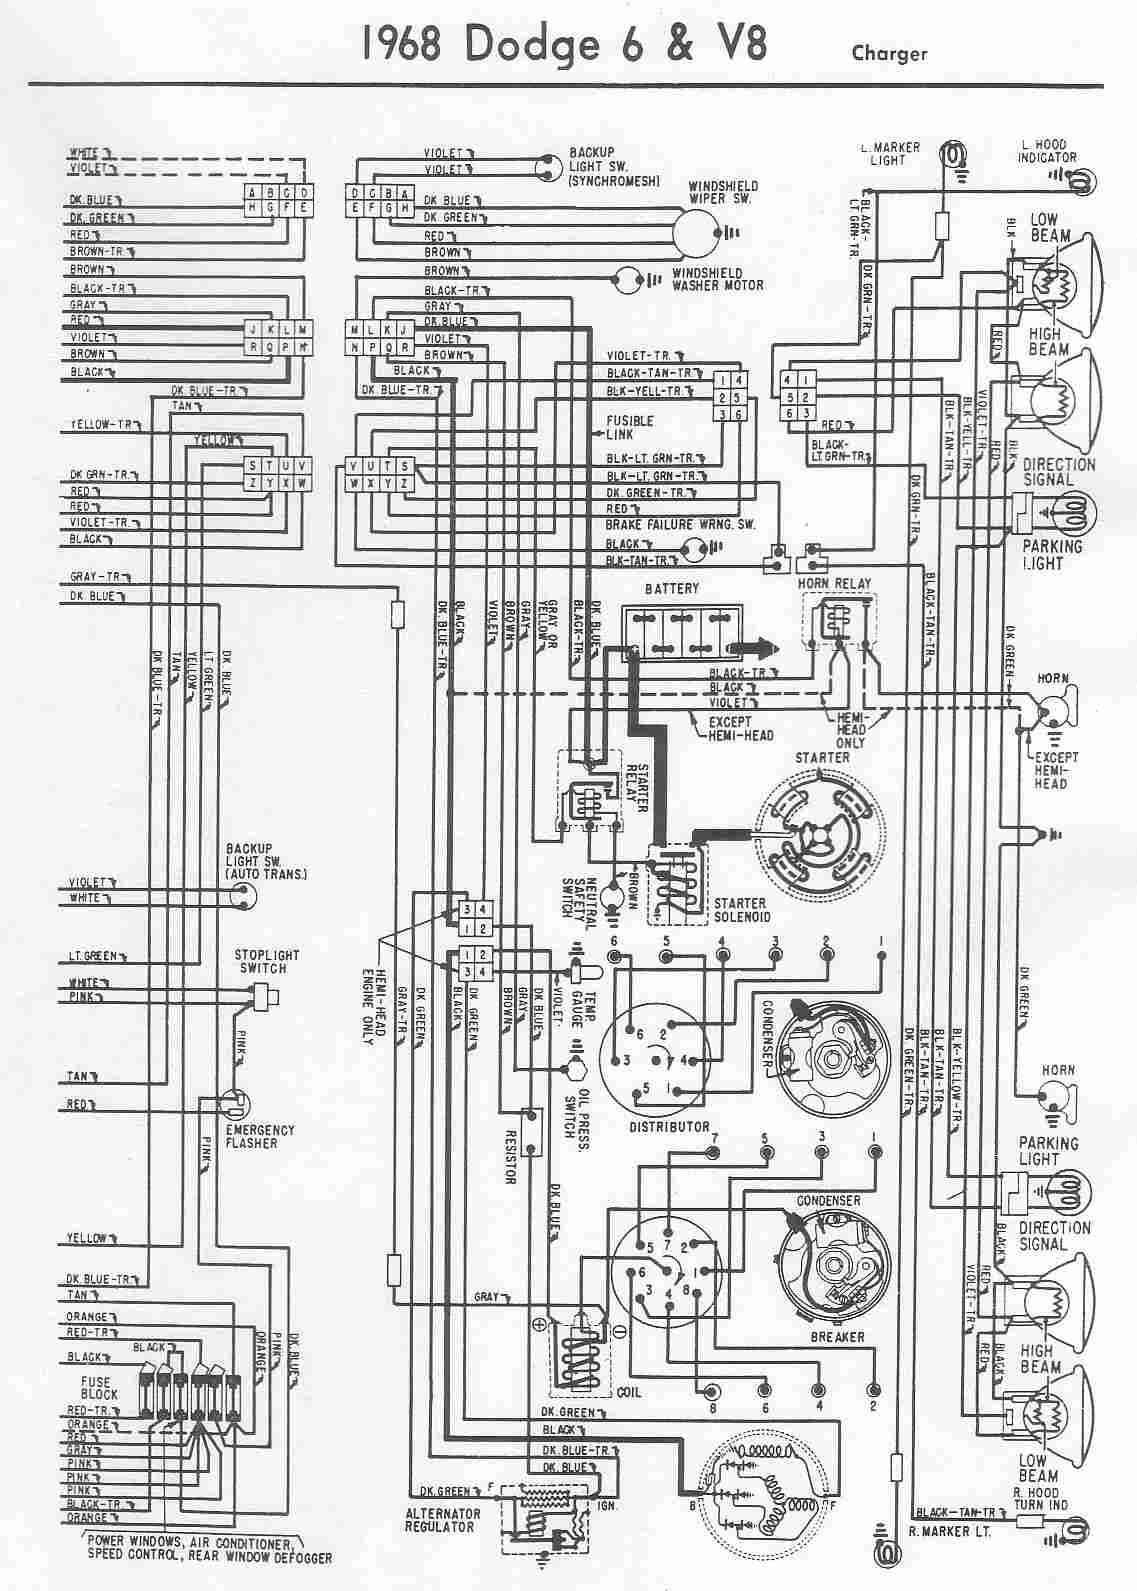 Dodge Car Manuals Wiring Diagrams Pdf Fault Codes 1987 Chevy Pickup 5 7 Engine Ignition Diagram Download